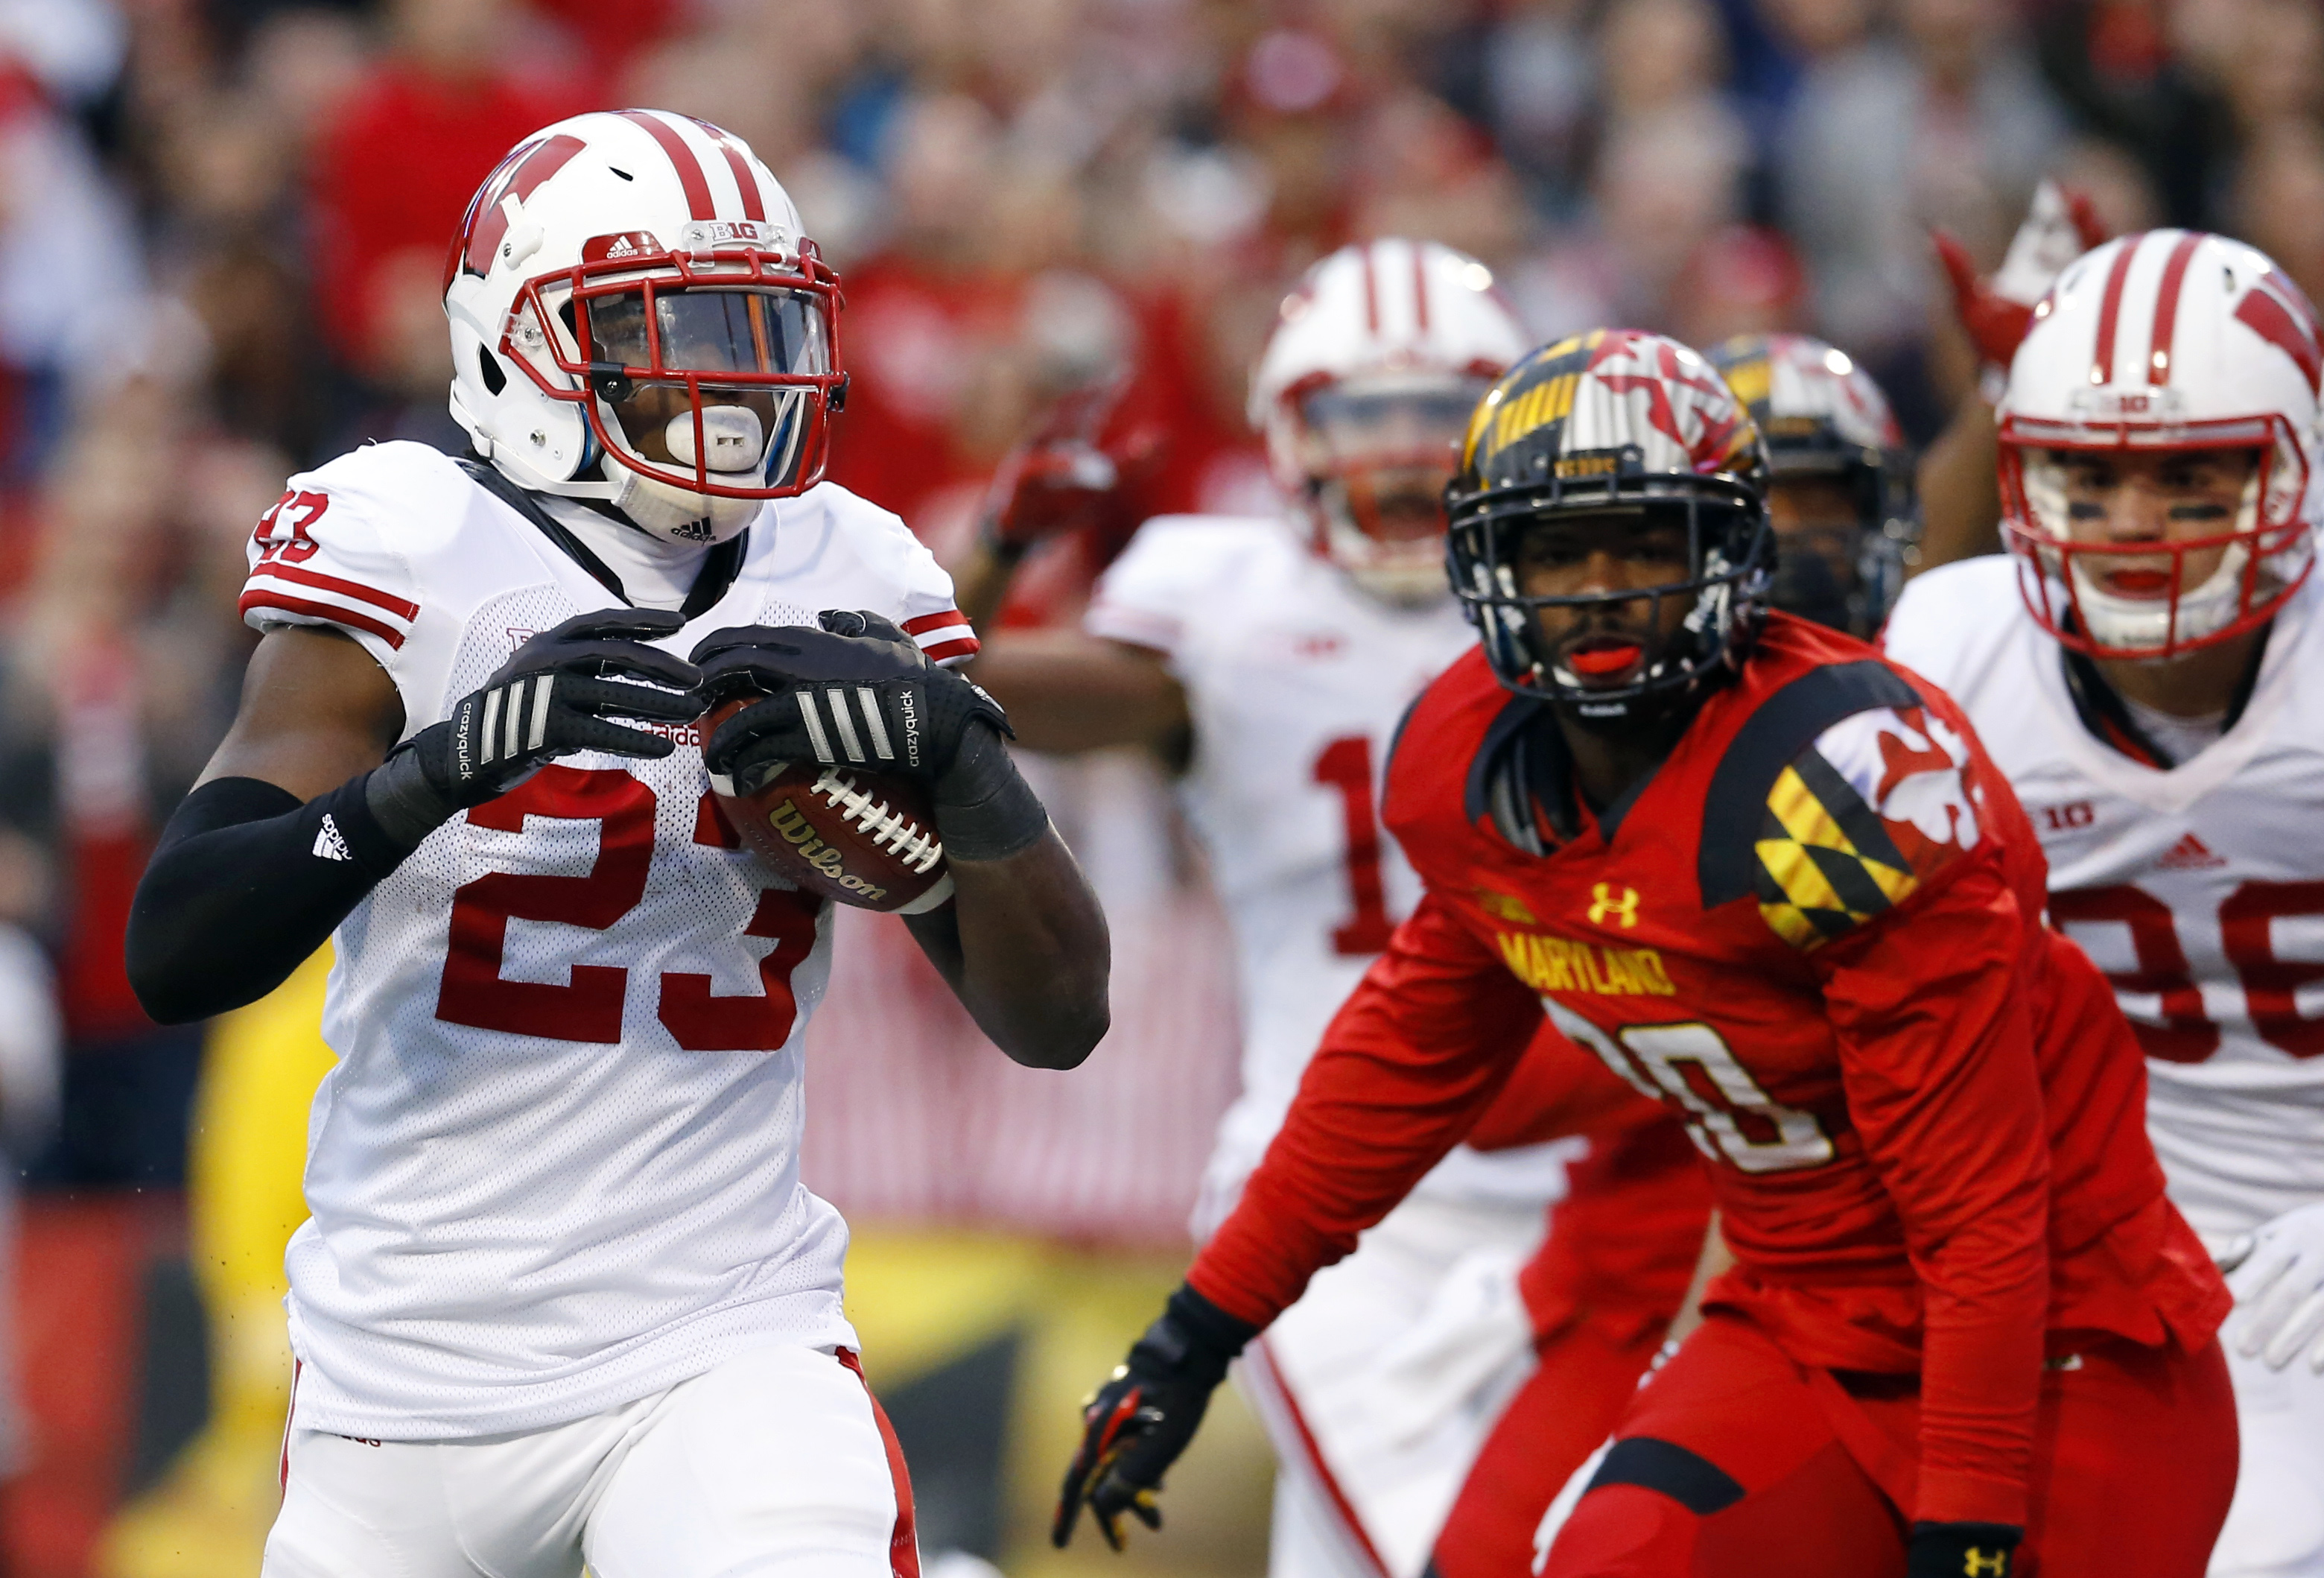 Wisconsin running back Dare Ogunbowale, left, scores a touchdown in front of Maryland defensive back Anthony Nixon, back right, in the first half of an NCAA college football game, Saturday, Nov. 7, 2015, in College Park, Md. (AP Photo/Patrick Semansky)